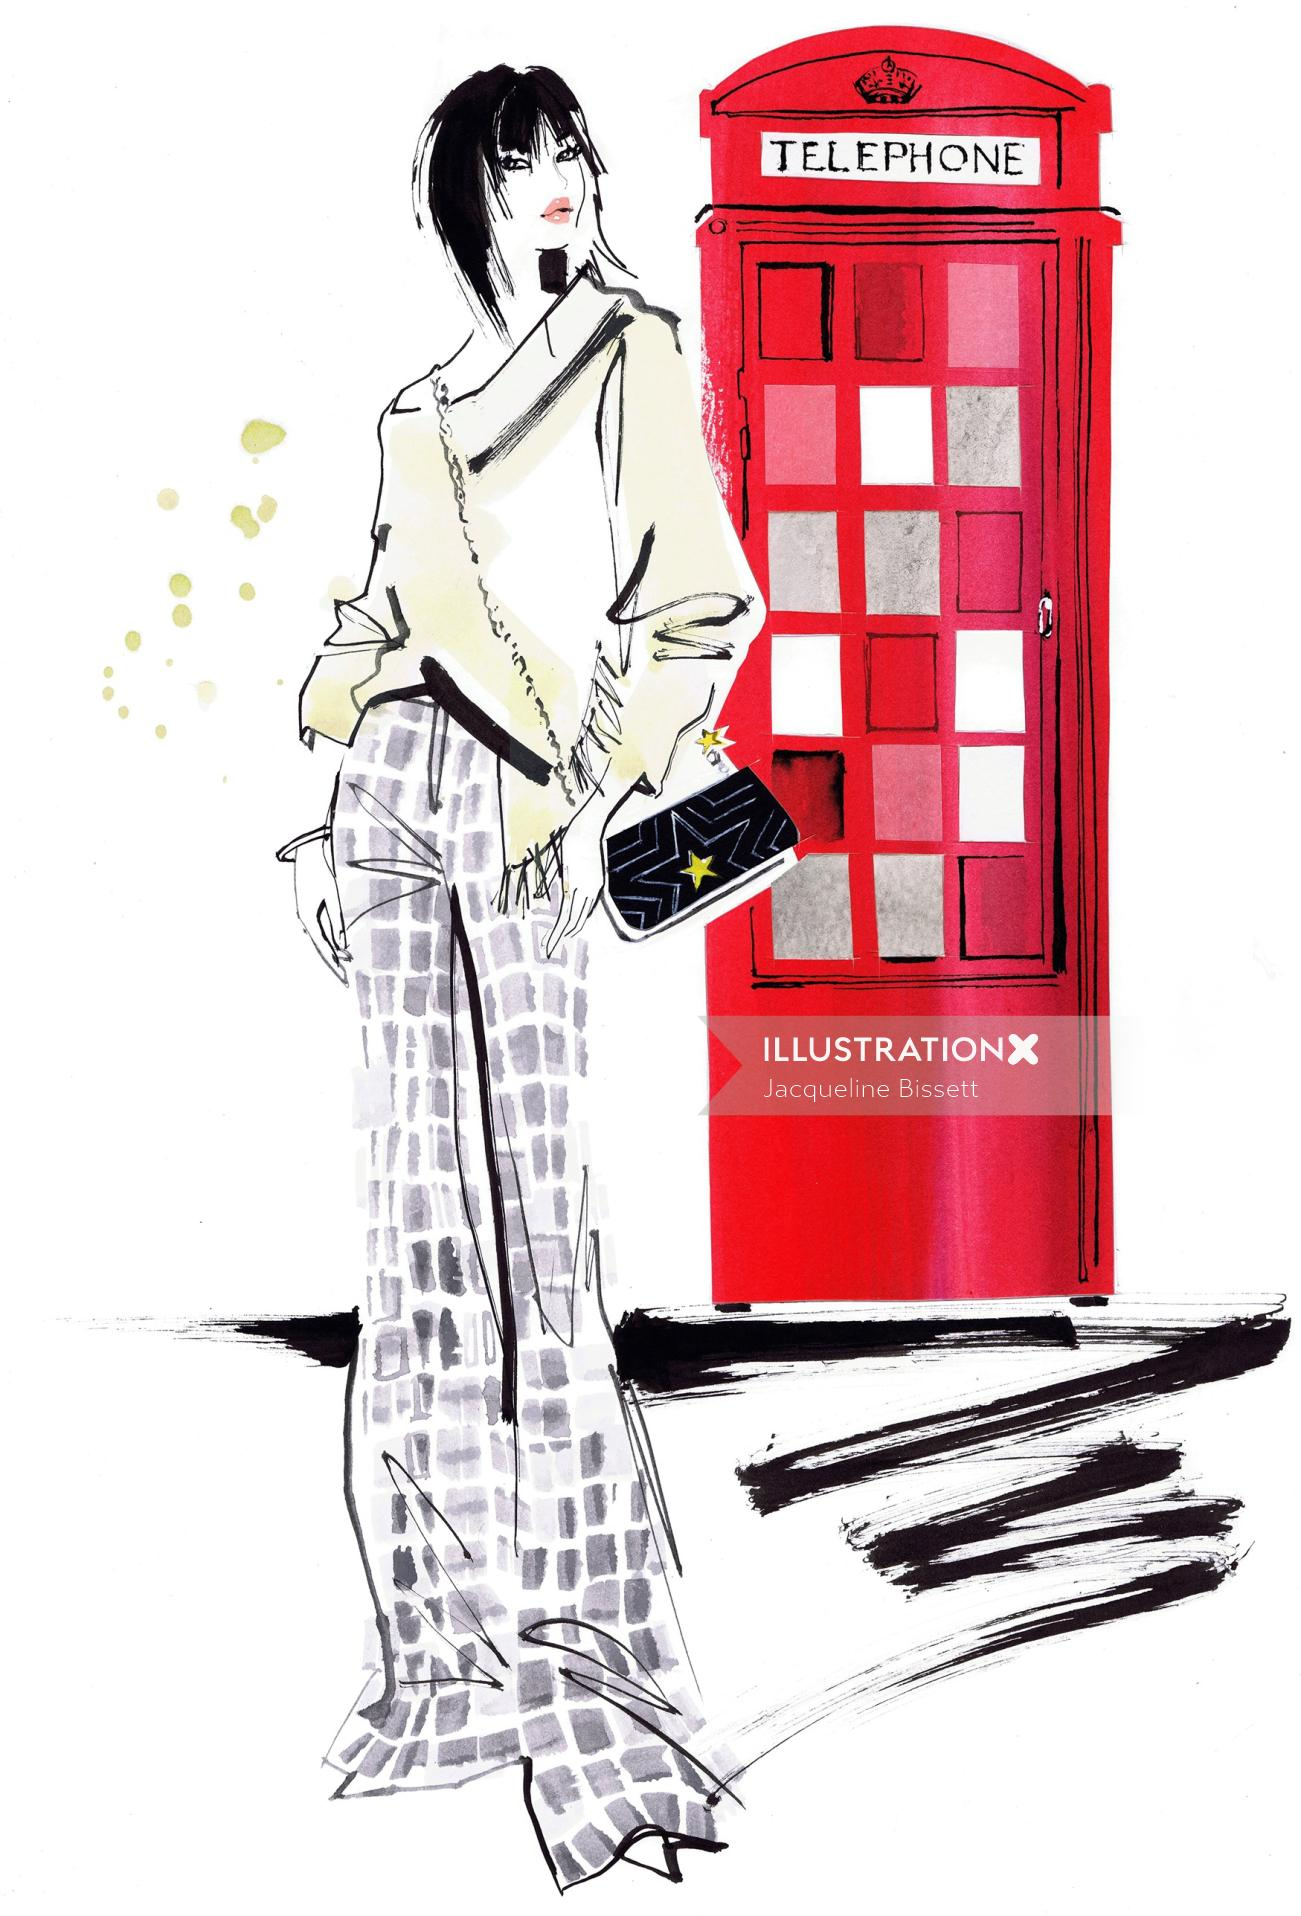 watercolor illustration of woman and red telephone booth